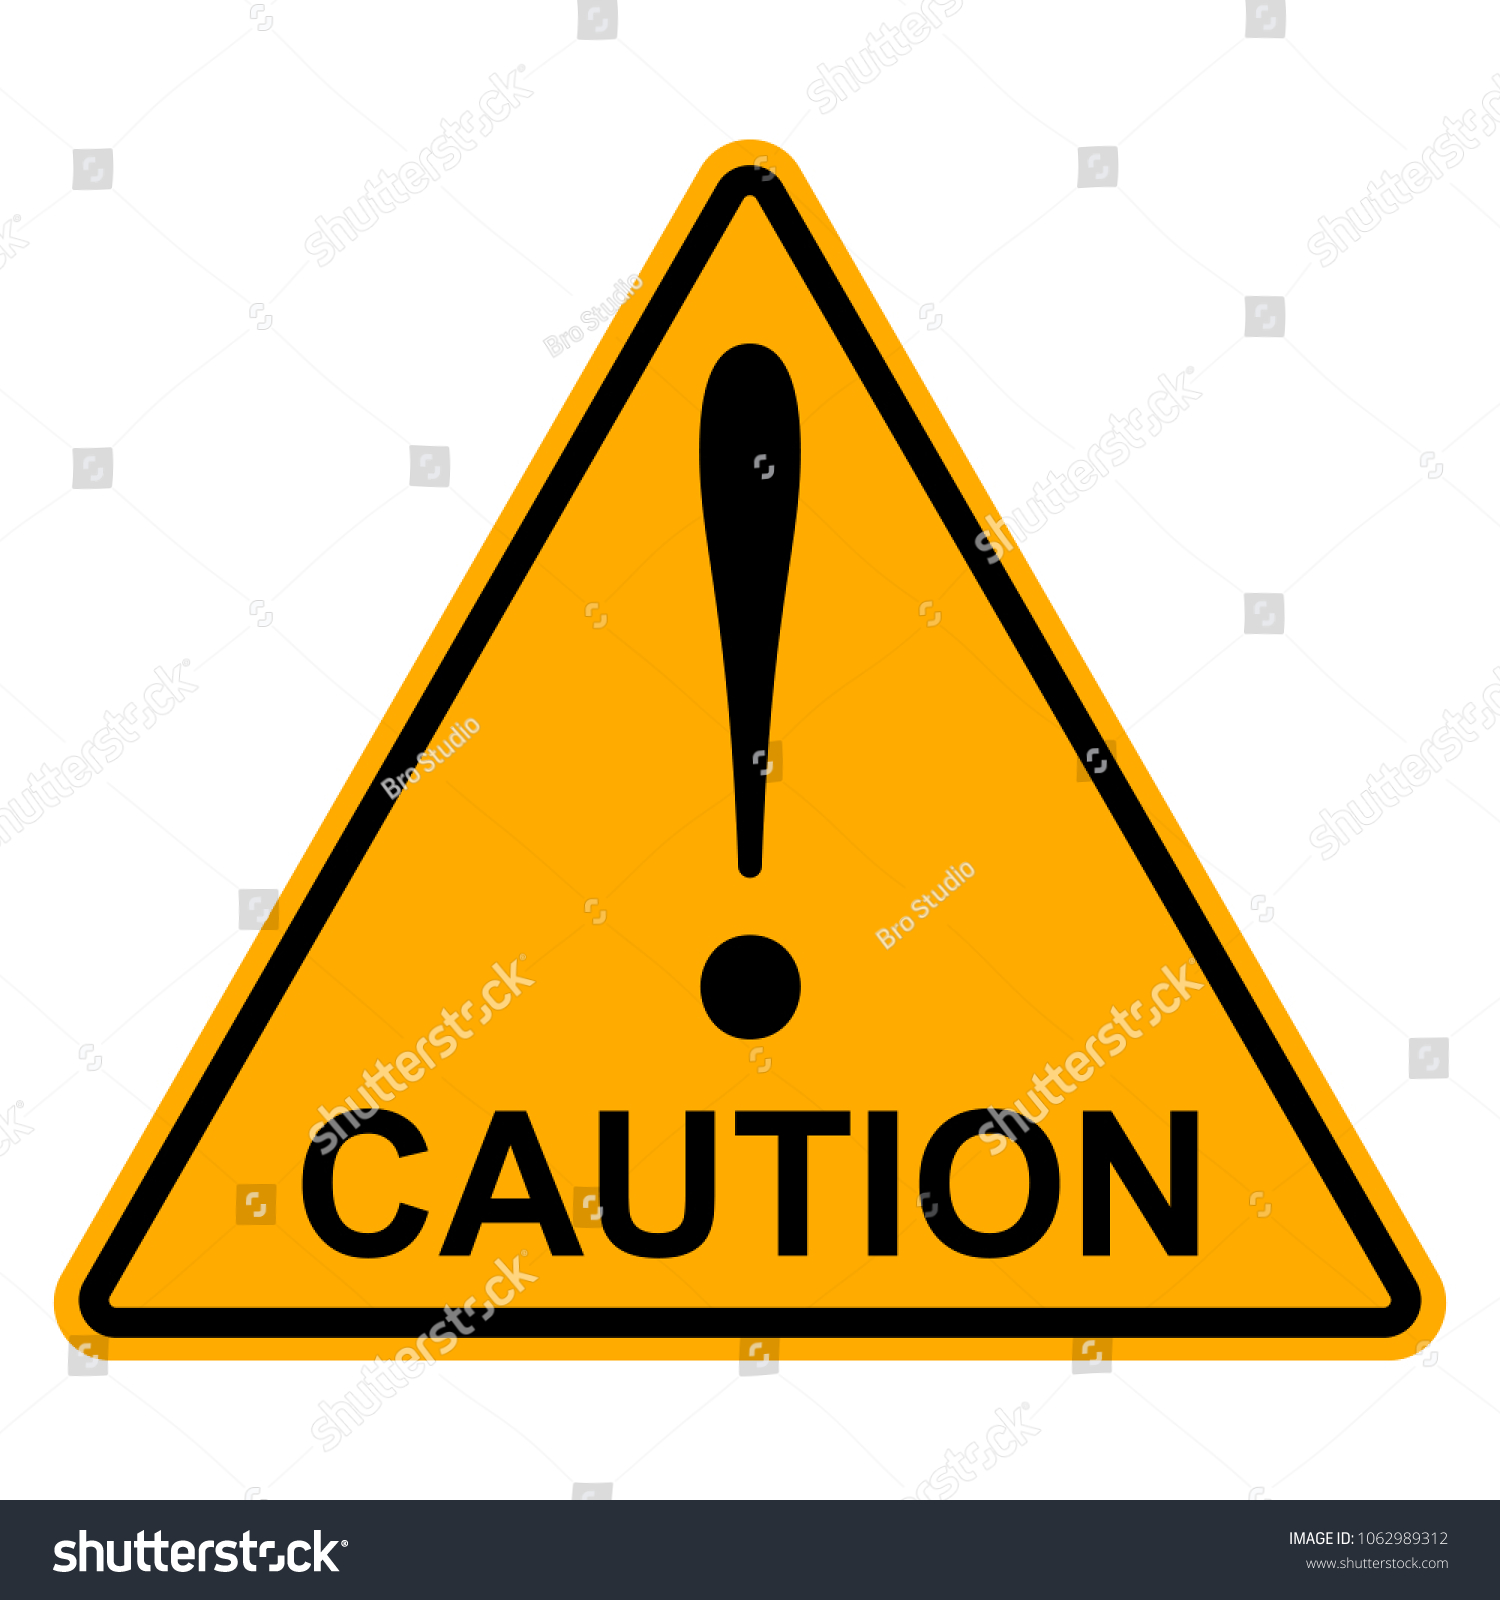 Orange yellow triangle exclamation mark word stock vector 1062989312 orange yellow triangle with exclamation mark the word caution vector hazard warning attention sign buycottarizona Choice Image